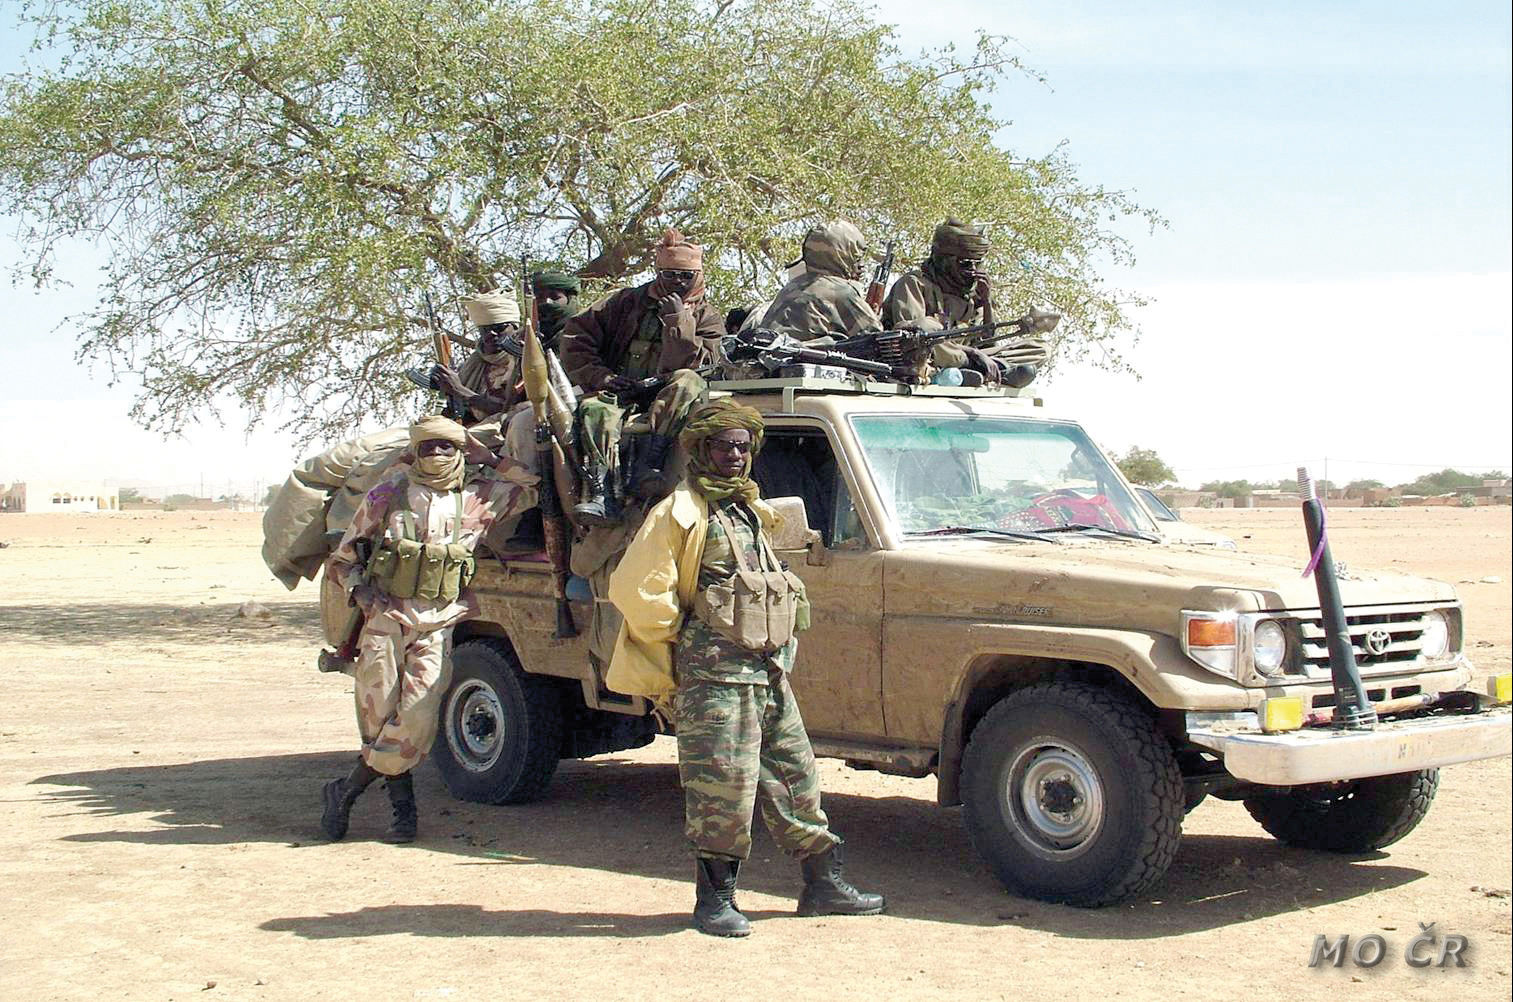 solders use a Toyota land cruiser